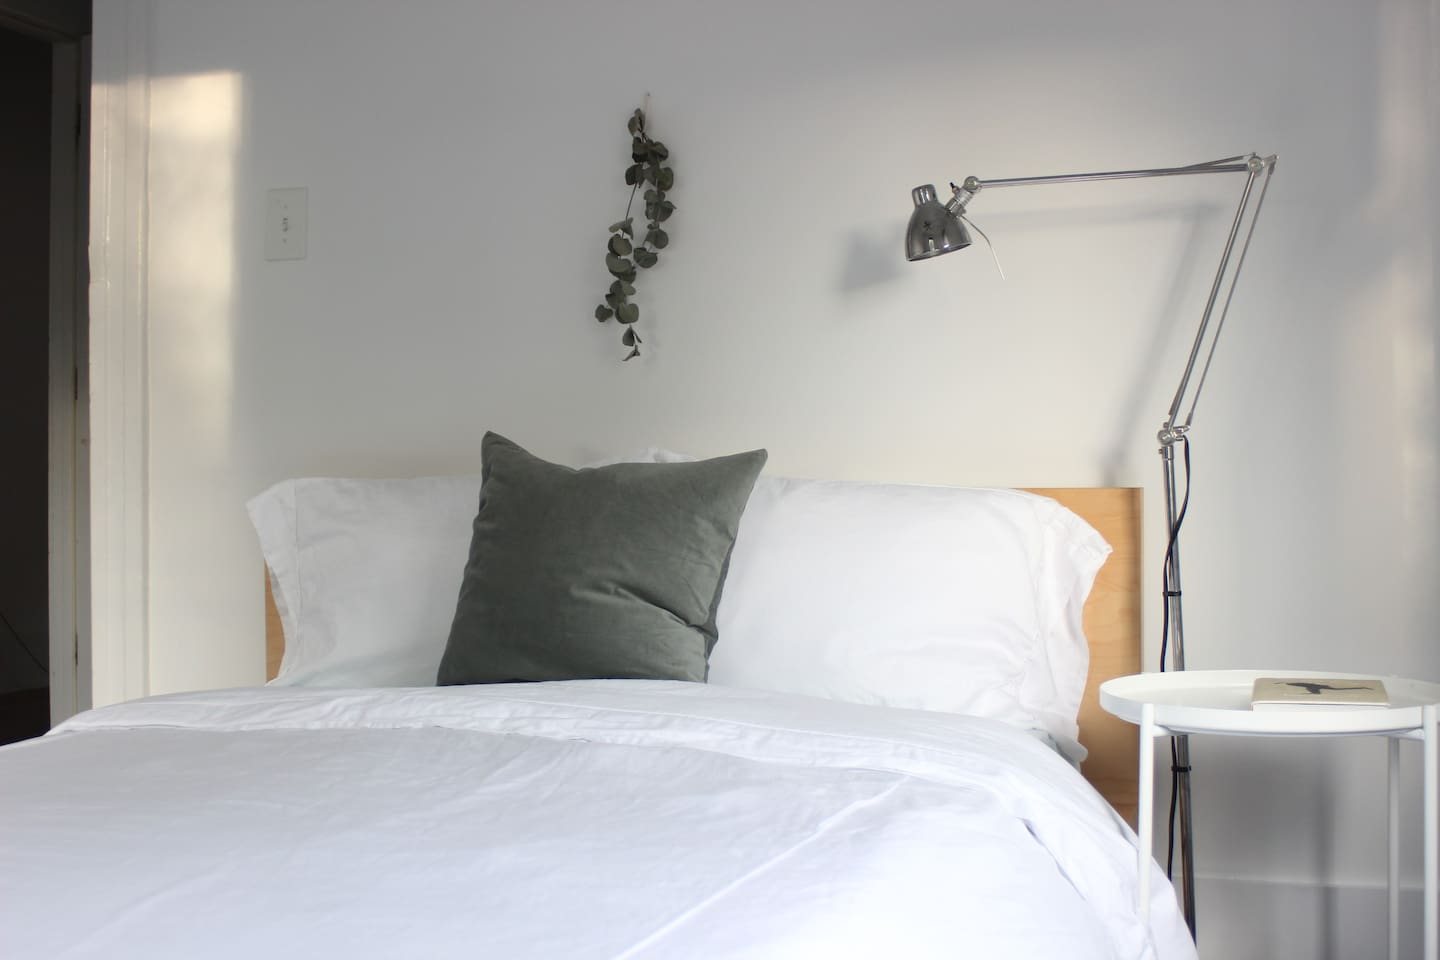 Fall asleep to the subtle scent of eucalyptus in your 300 thread count sheets and duvet